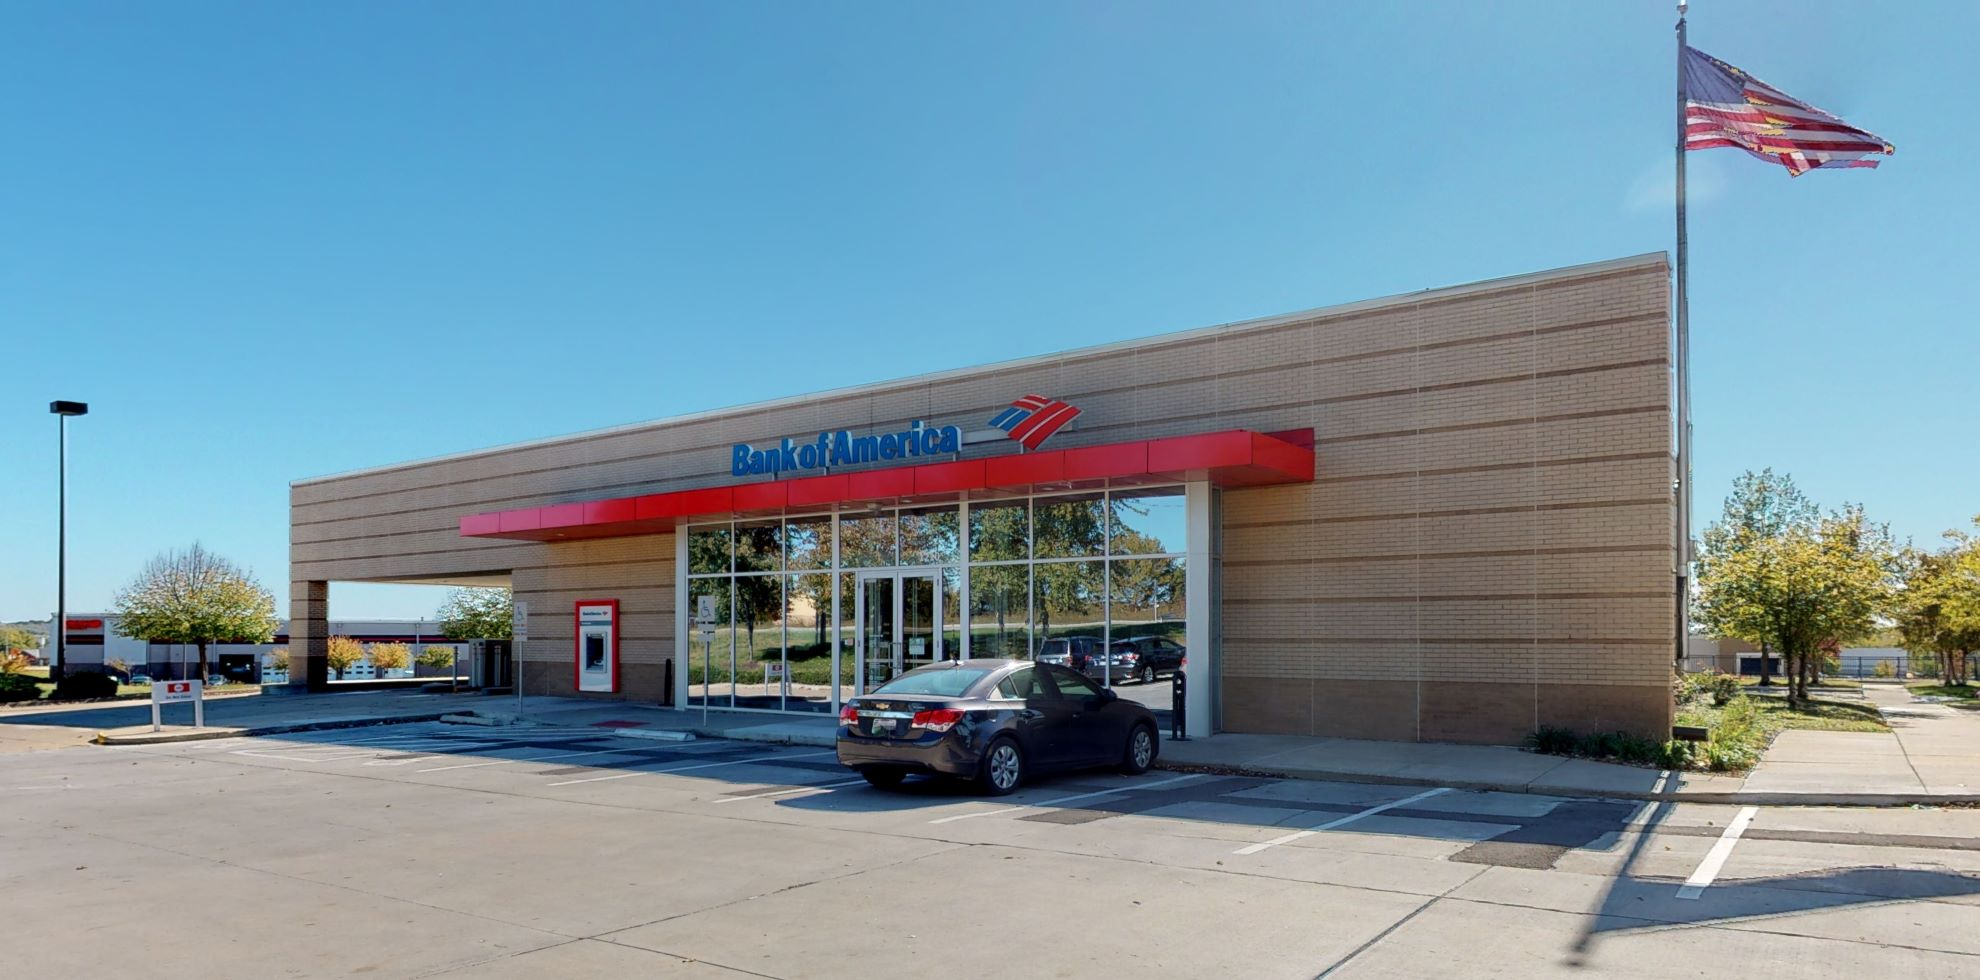 Bank of America financial center with drive-thru ATM   1210 W 135th Ter, Kansas City, MO 64145